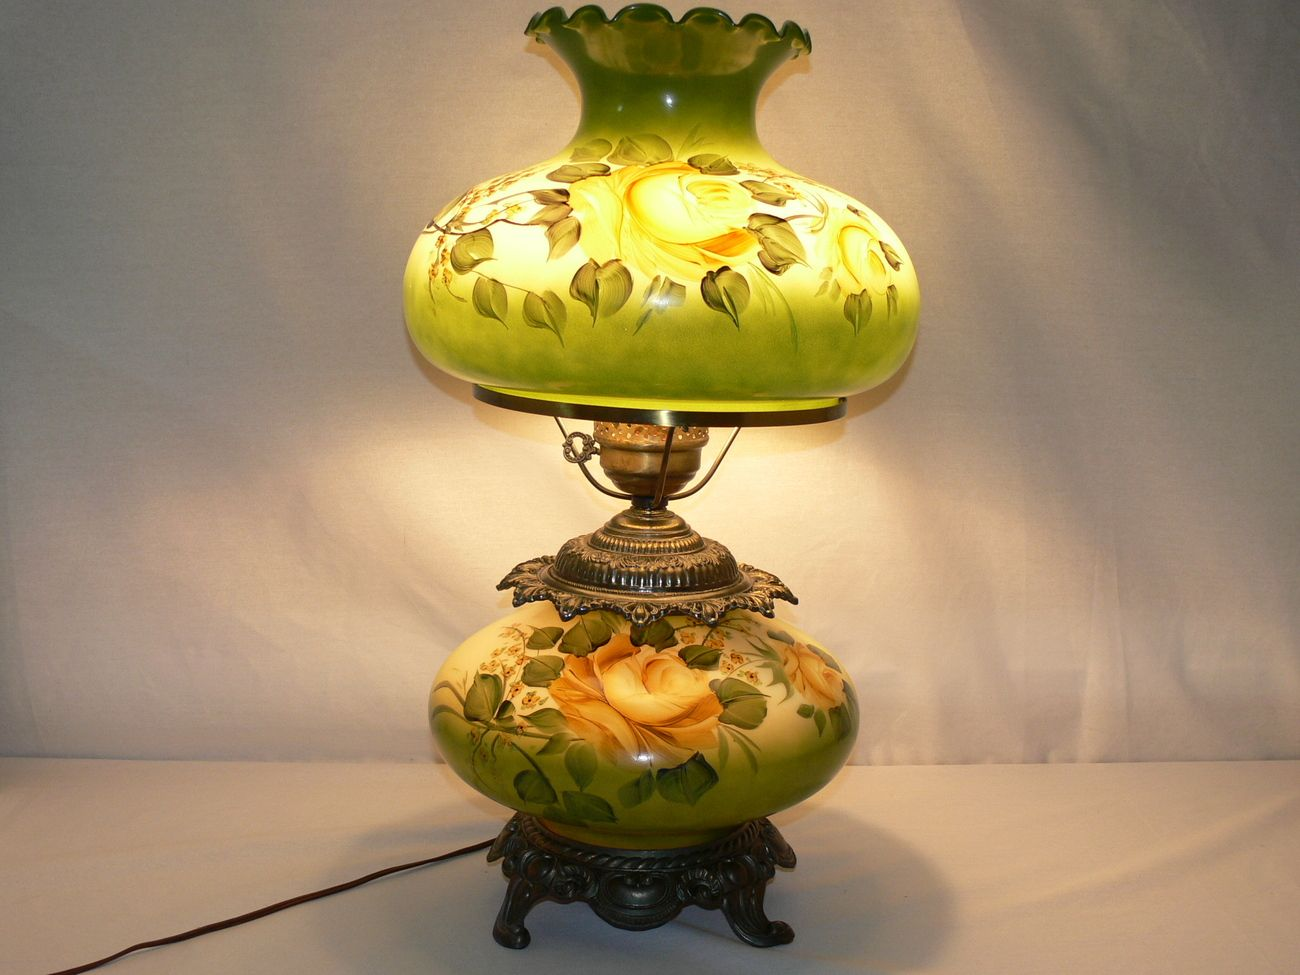 Vintage Large 24 Gone With The Wind Hand Painted Yellow Roses Hurricane Lamp Vintage Hurricane Lamps Antique Hurricane Lamps Hurricane Lamps